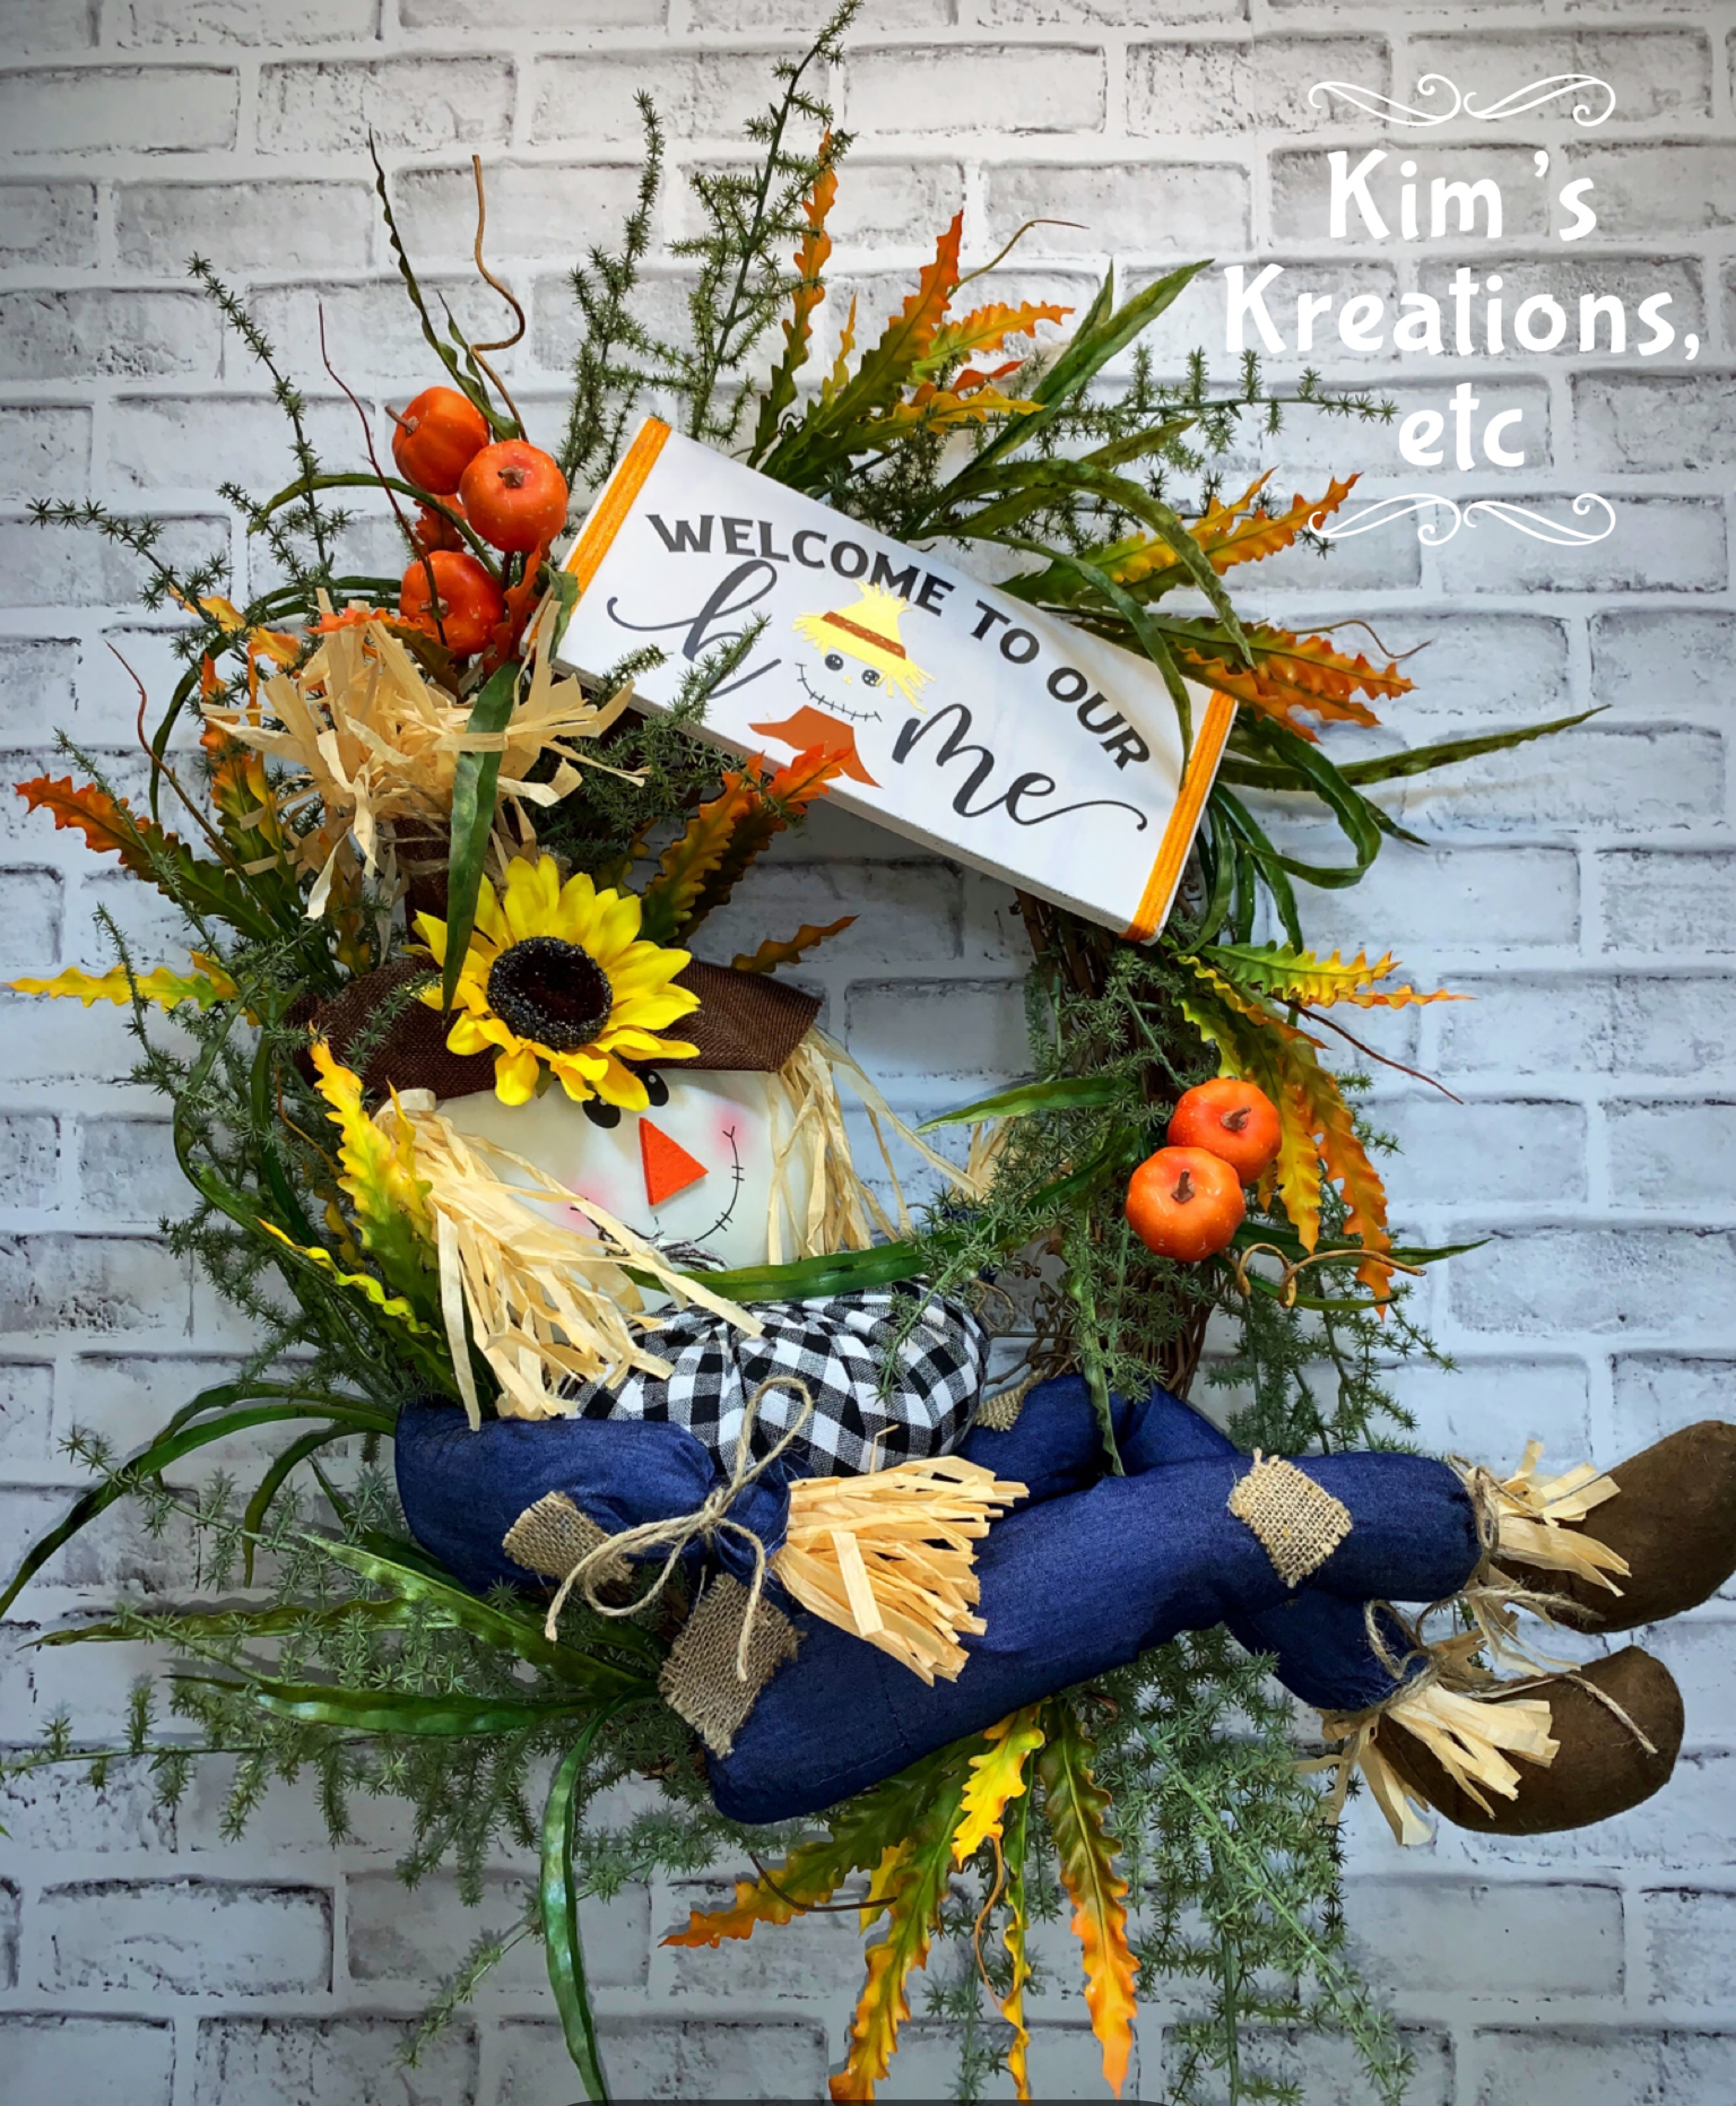 Fall Wreath Free Shipping Fall Scarecrow Fall Door Wreath Fall Welcome Wreath Black And White Plaid Scarecrow Wreath Denim Scarecrow Large Fall Wreath Wispy Fall Wreath Fall Scarecrow Oval Wreath For Fall